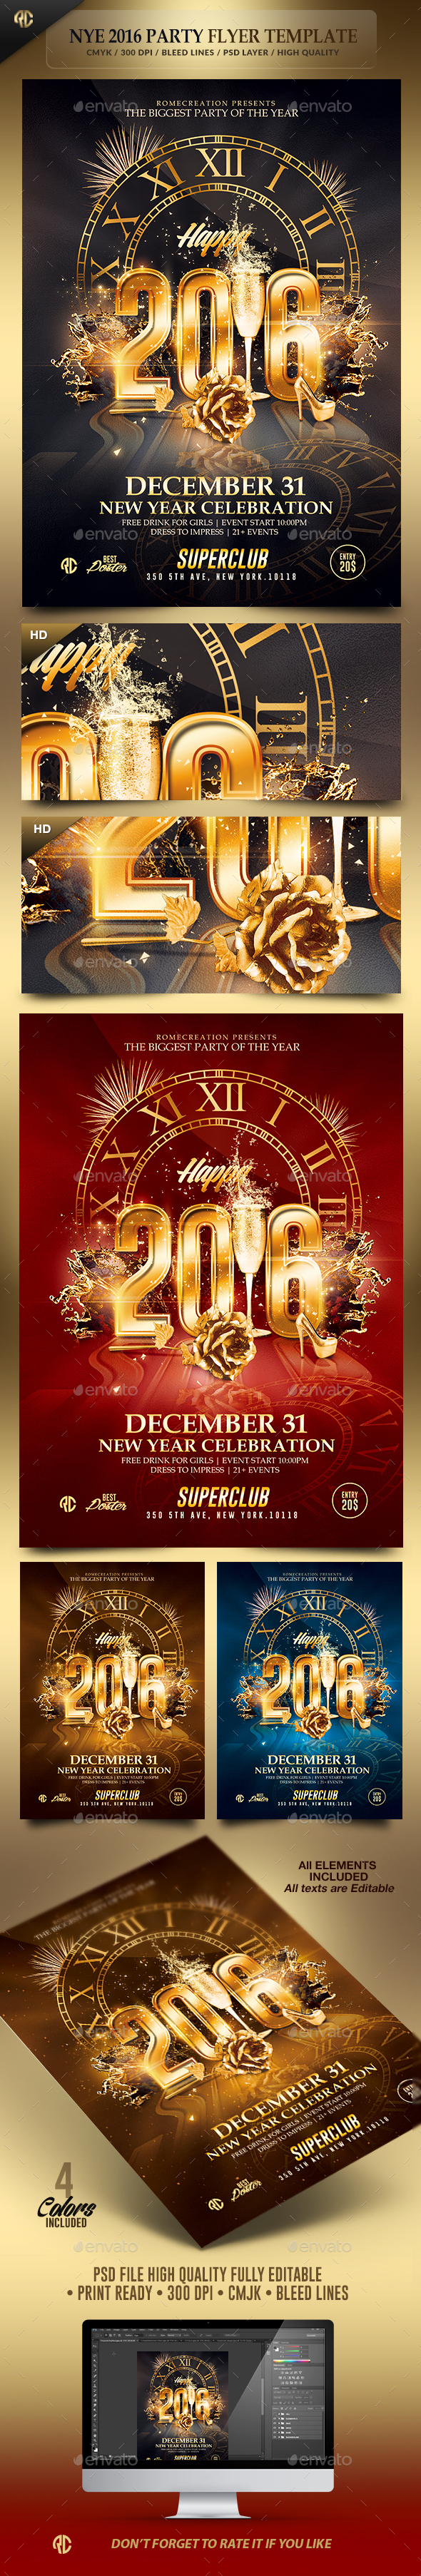 2016 New Year Party | Psd Flyer Template - Events Flyers